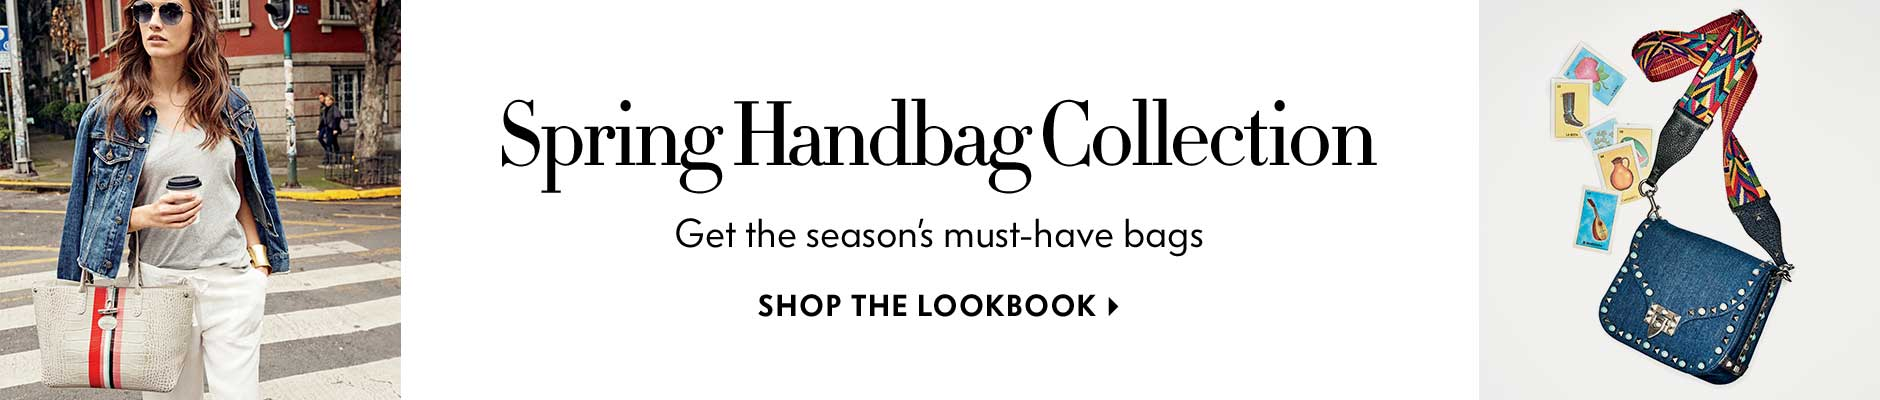 Spring Handbags Lookbook